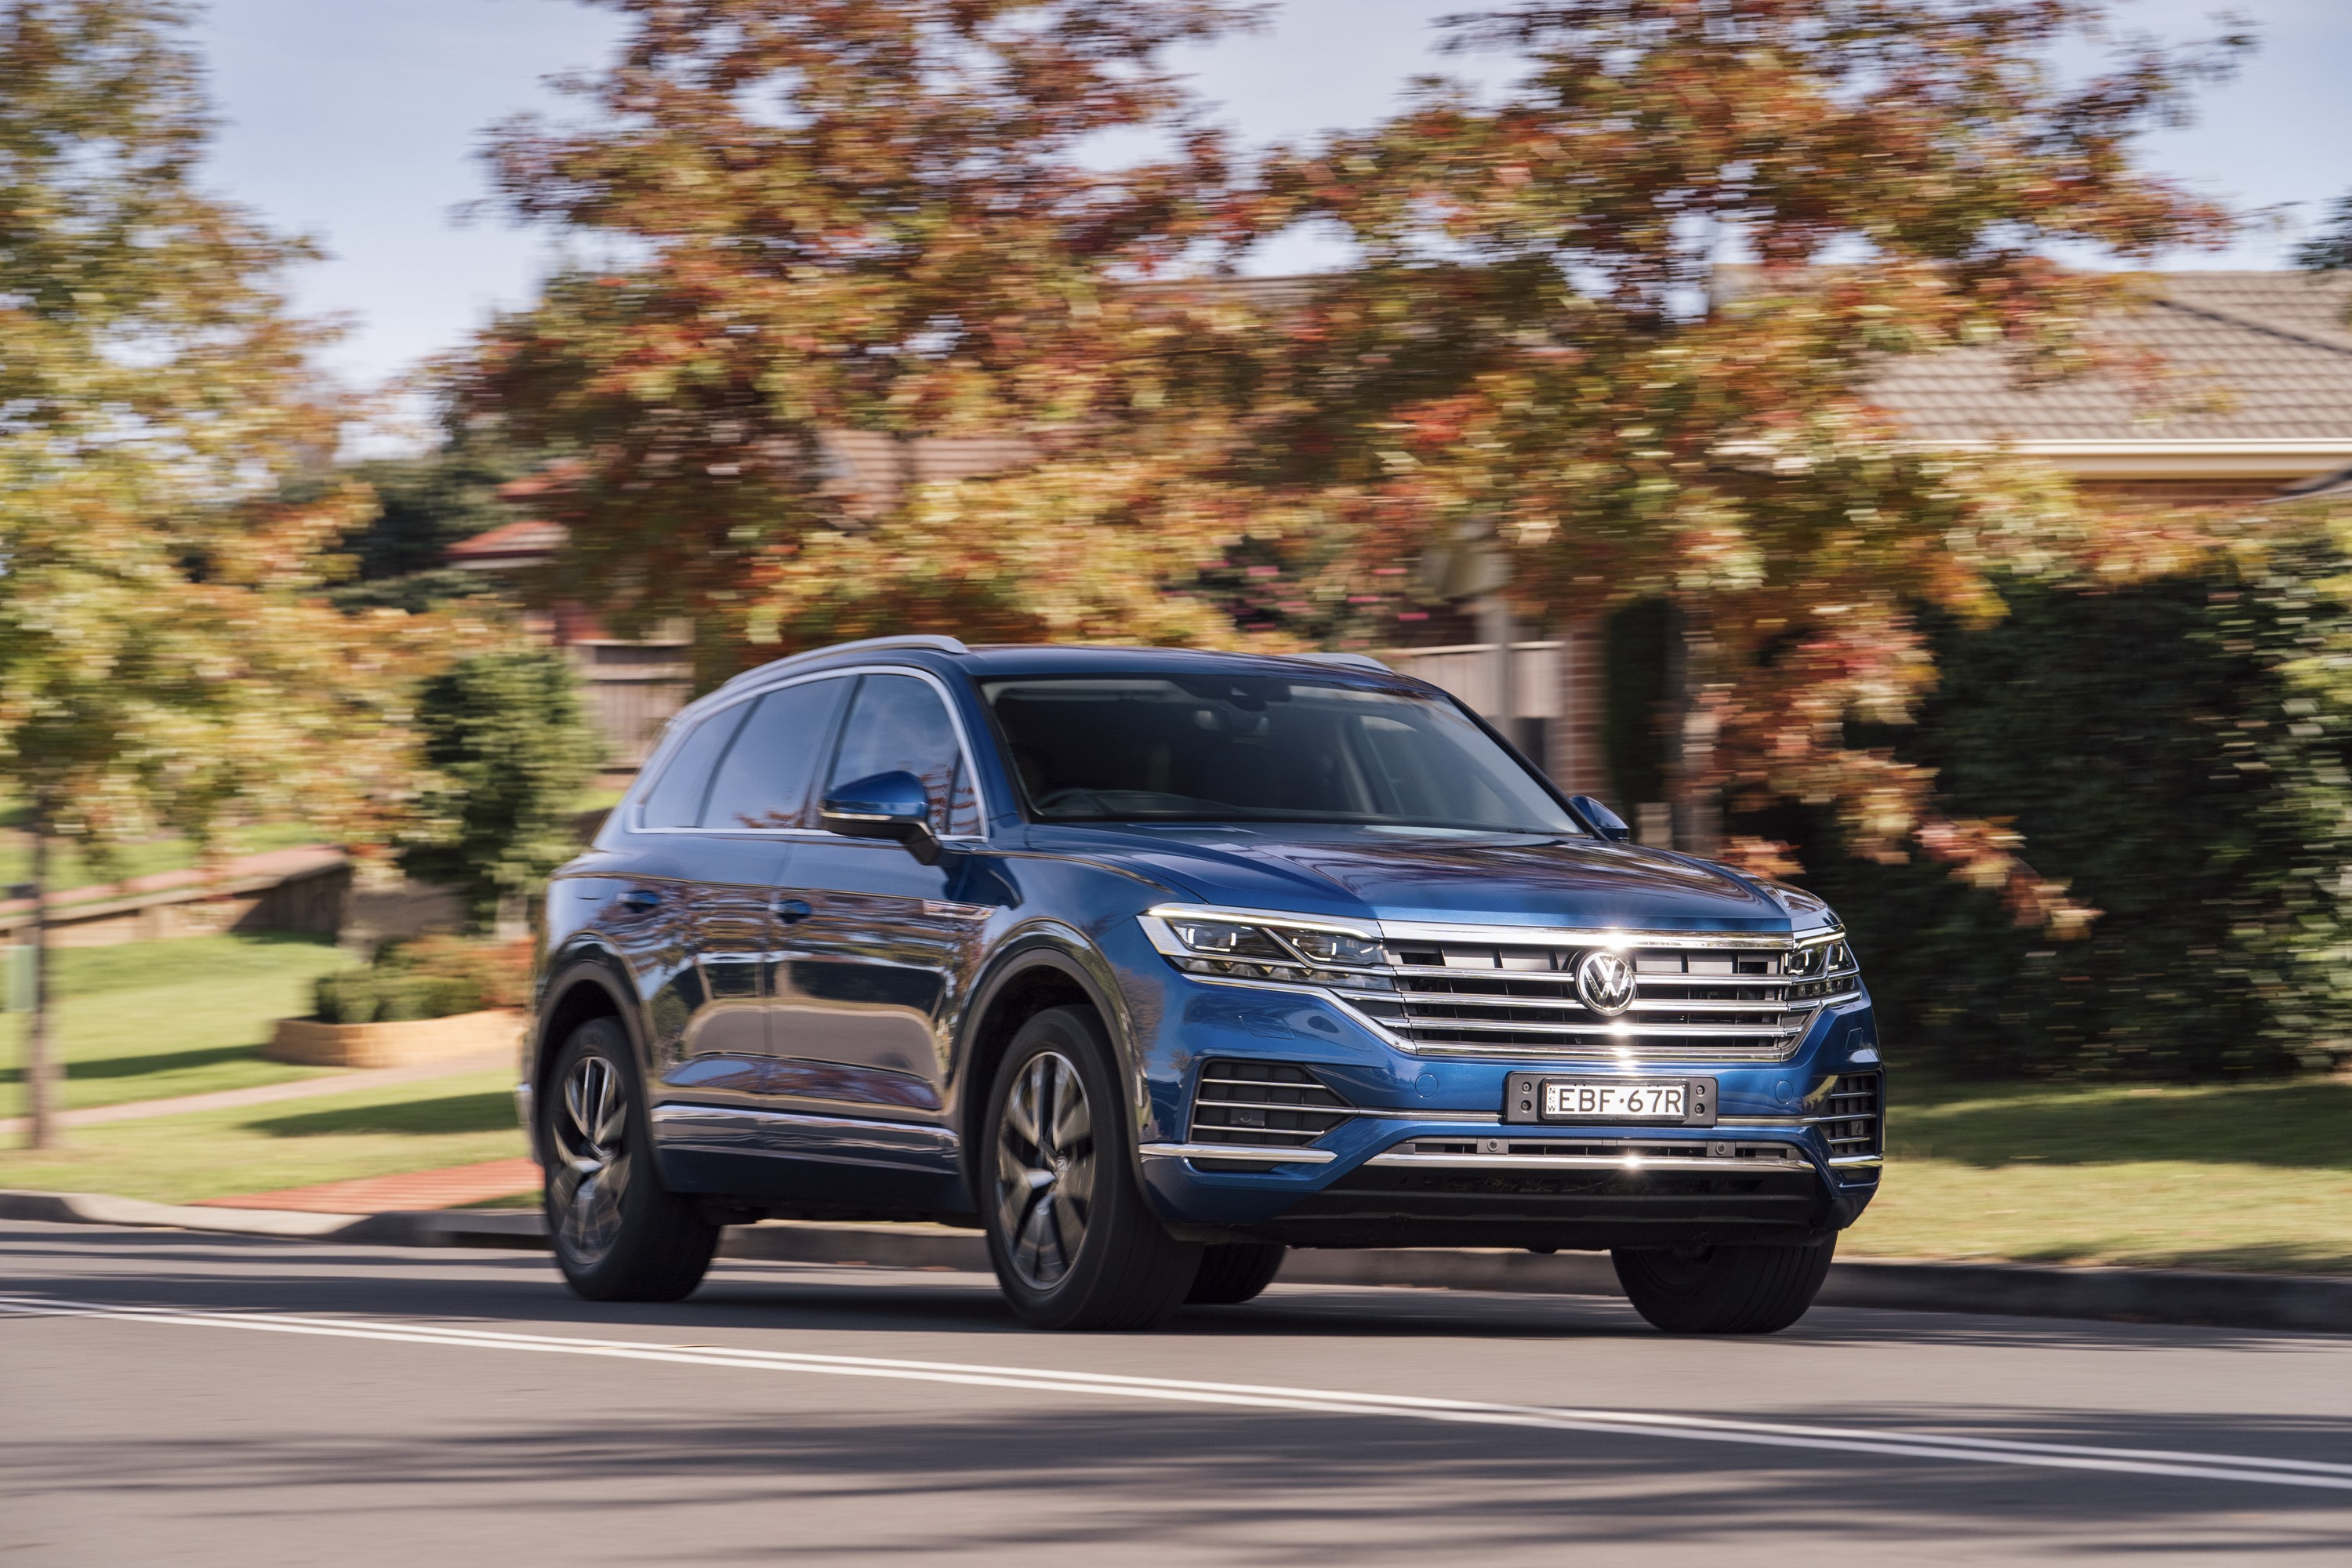 2019 VW Touareg Launch Edition 1 front three quater